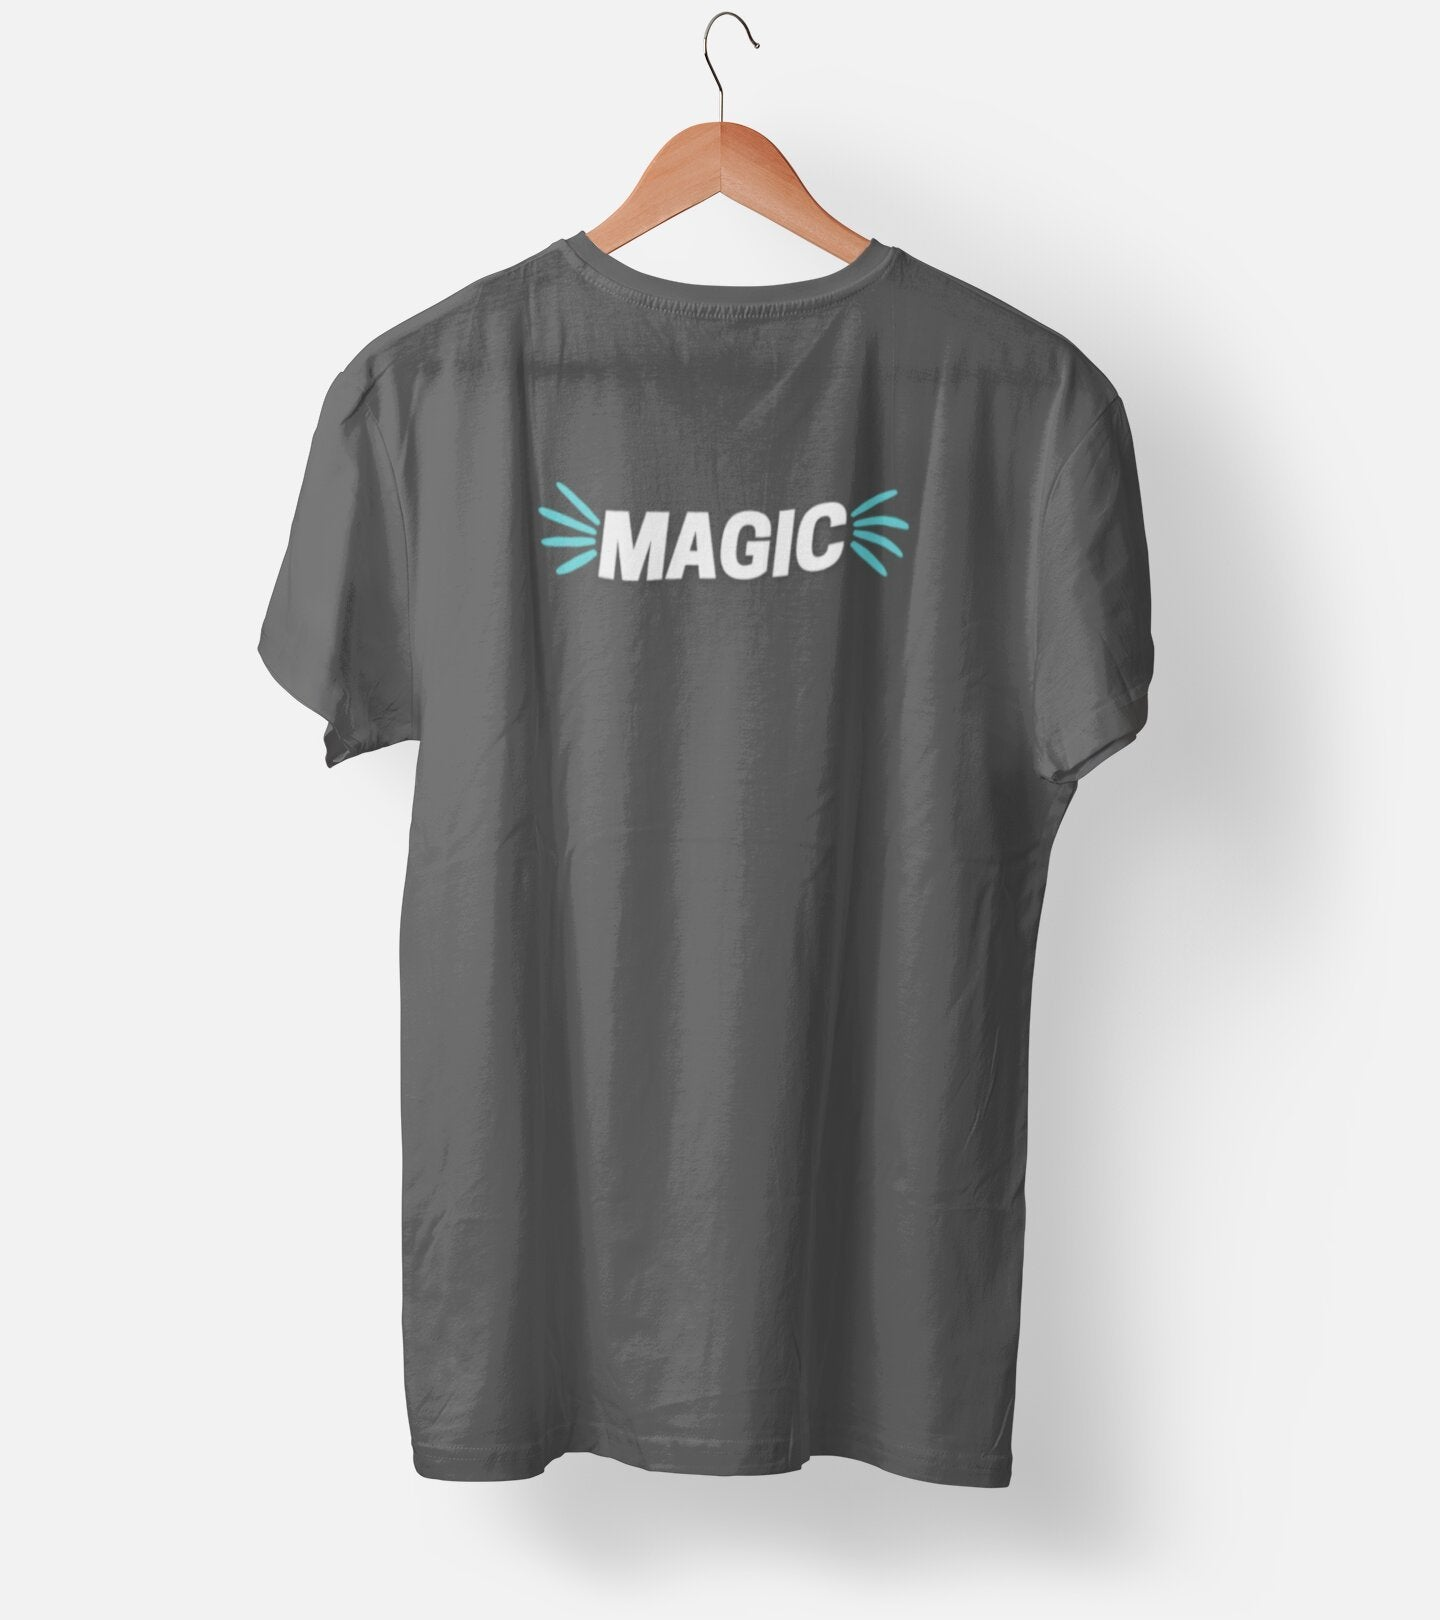 Magic Wordwear Men's T-Shirt - Dekh.com